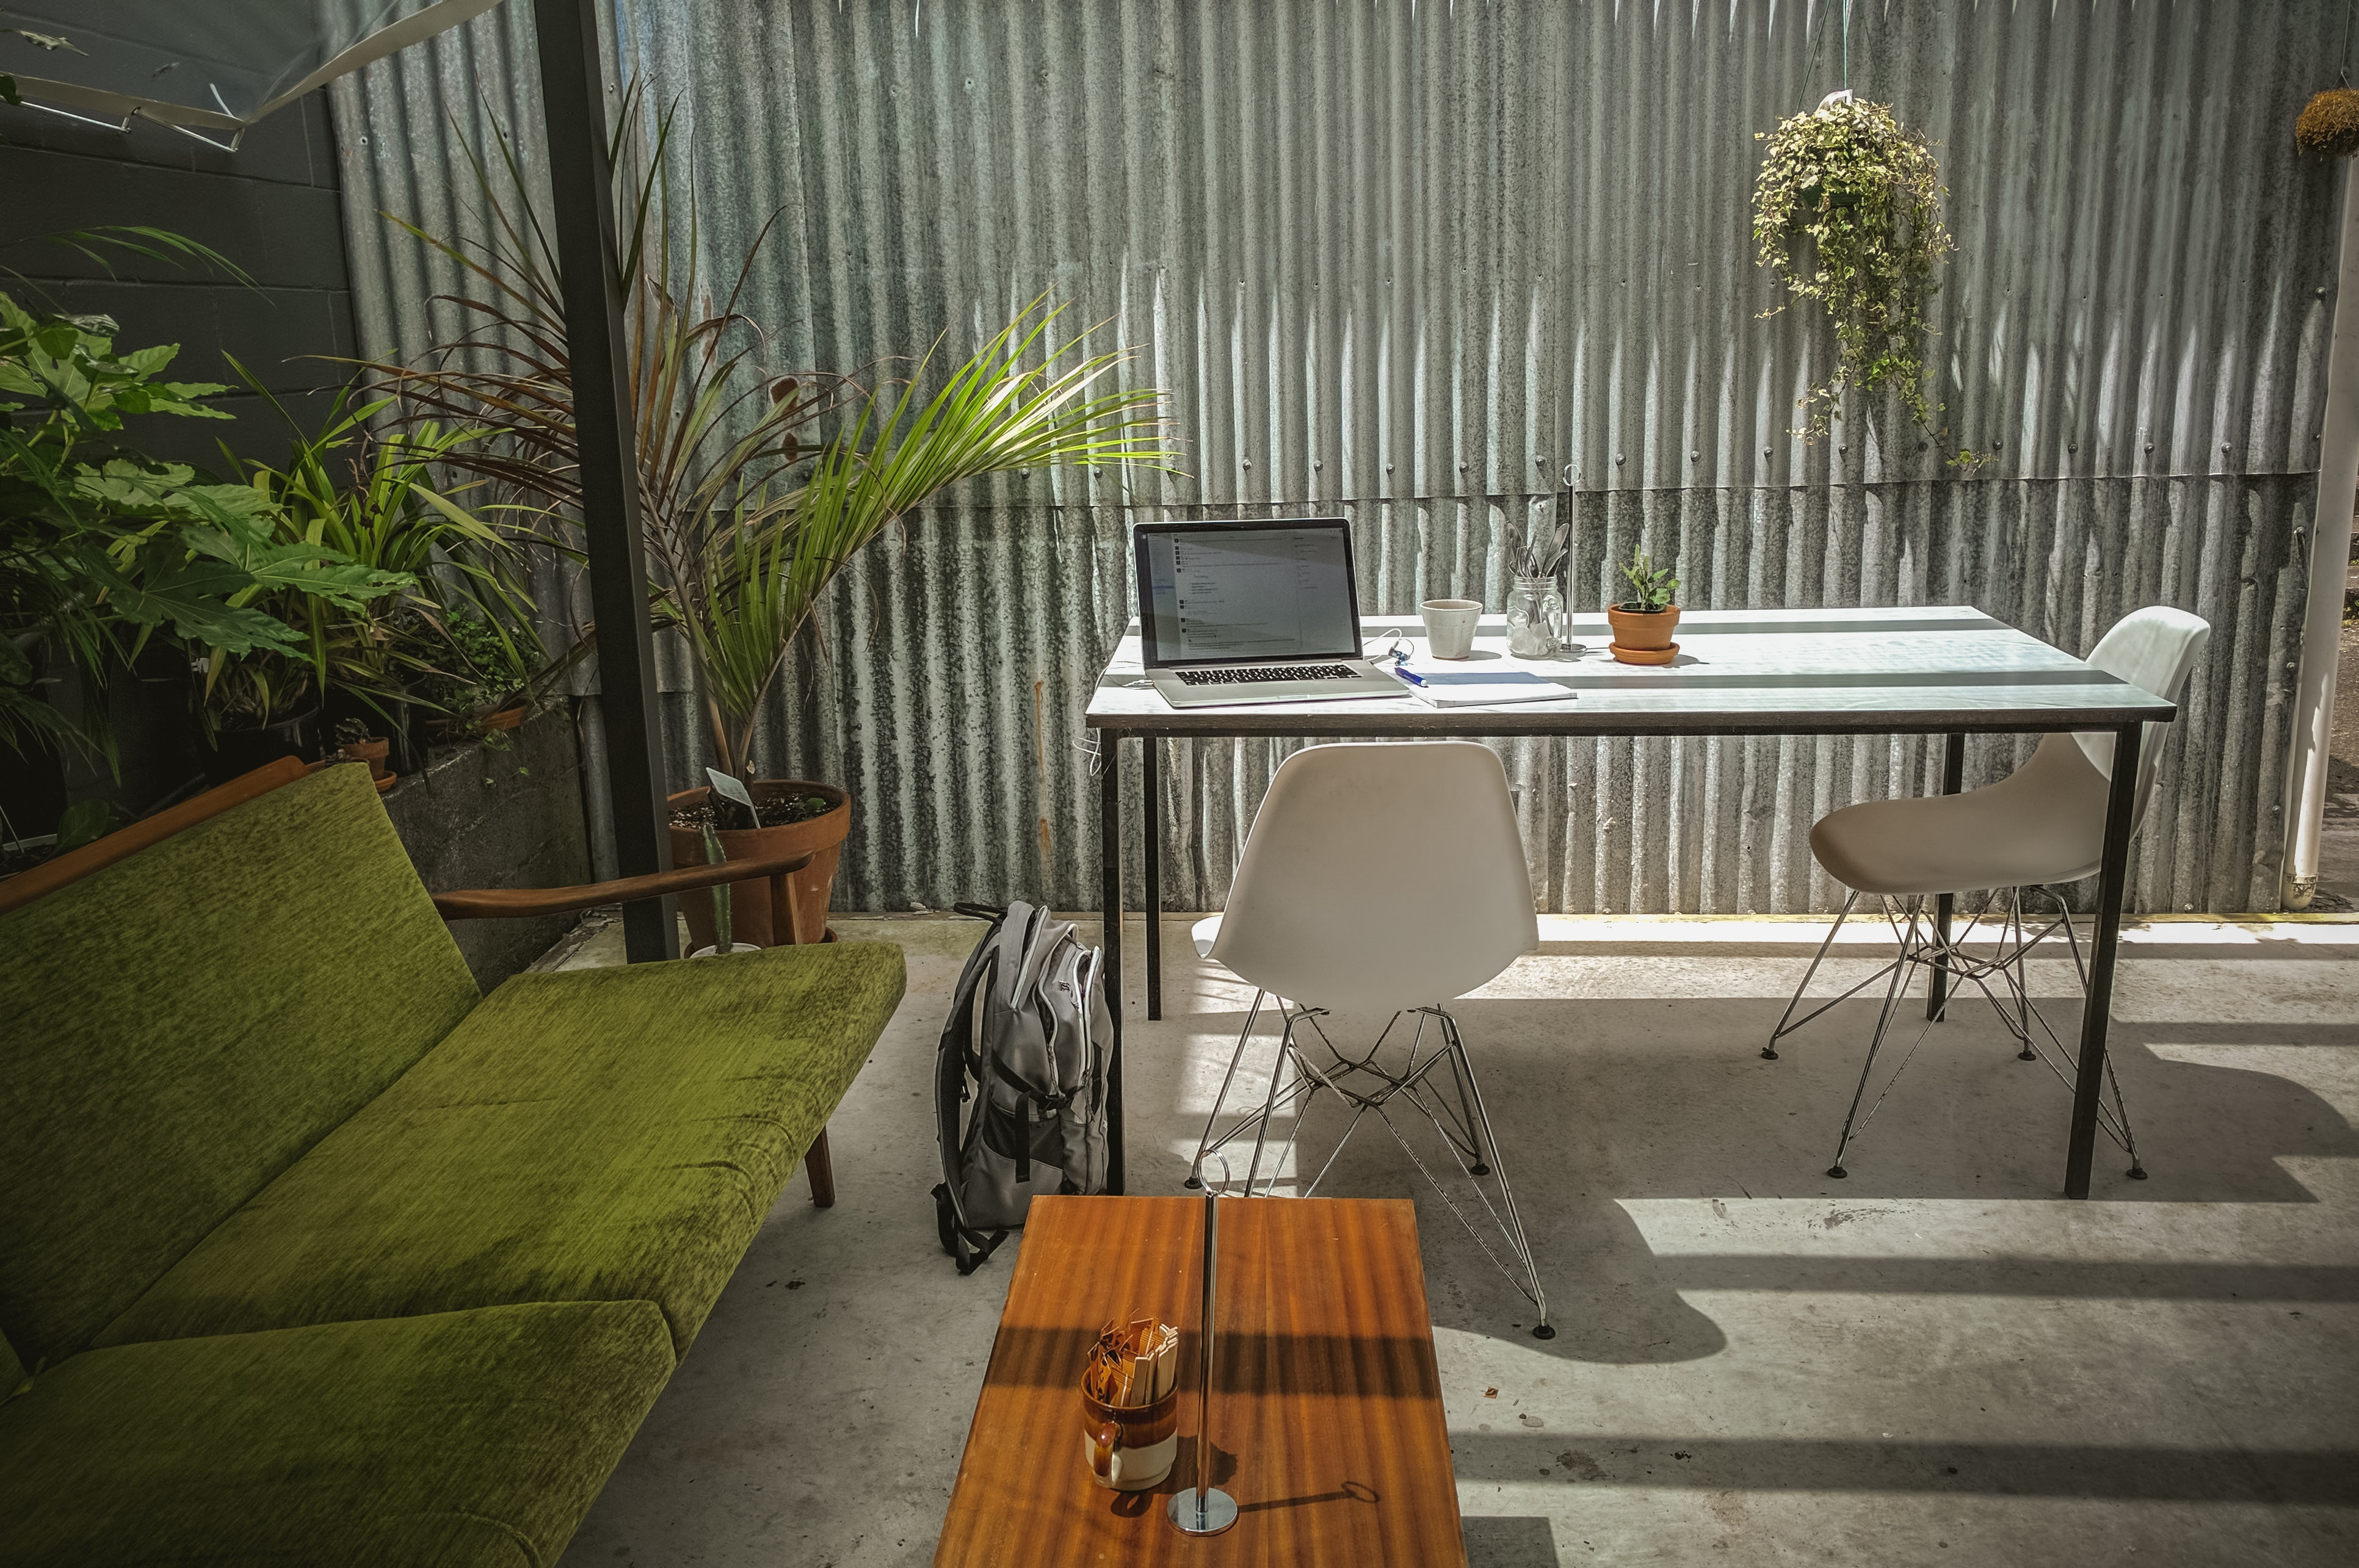 Outside deskspace against a corrugated metal wall with plants and sunlight